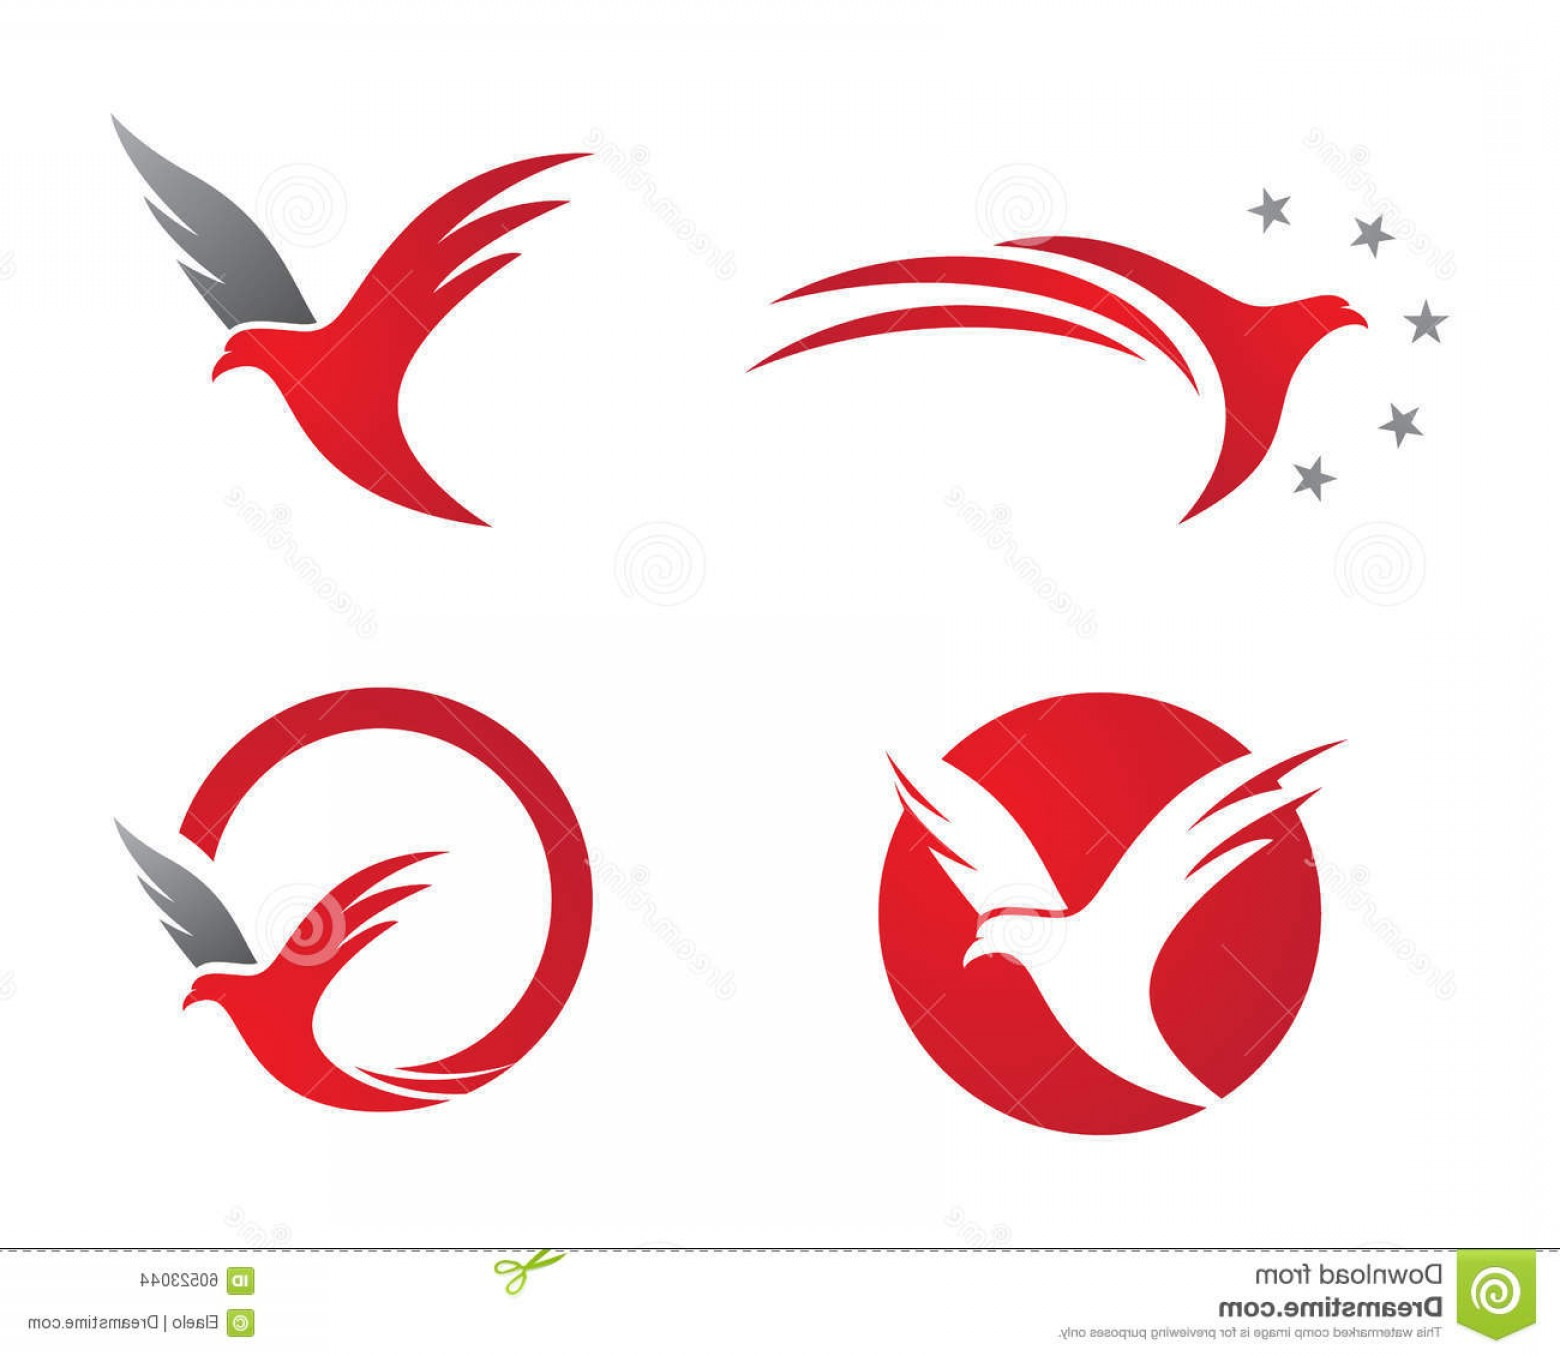 Falcon Wing Vector Art: Stock Illustration Bird Wings Logo Falcon Template Icons Image